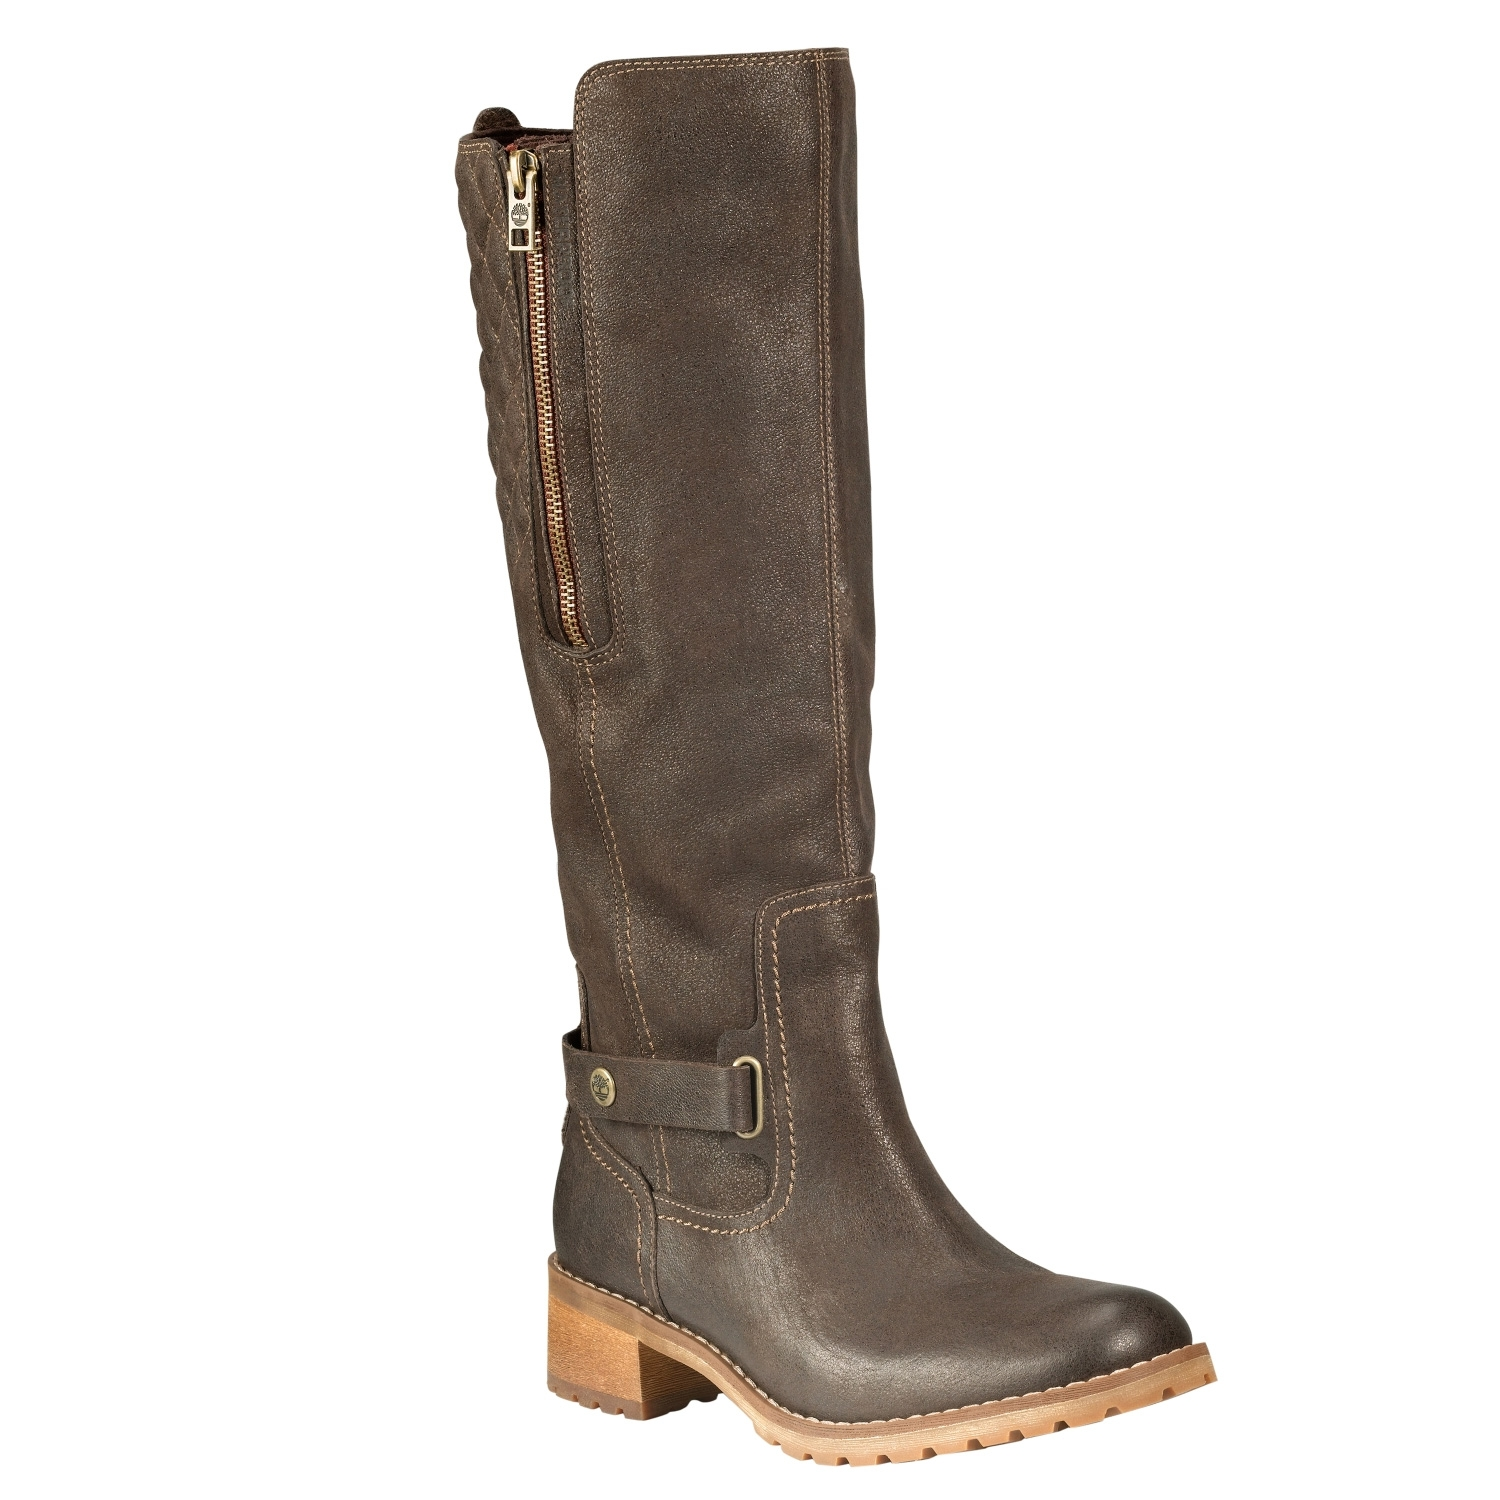 Image of Timberland Apley Tall Waterproof Boot (Women's) Dark Brown